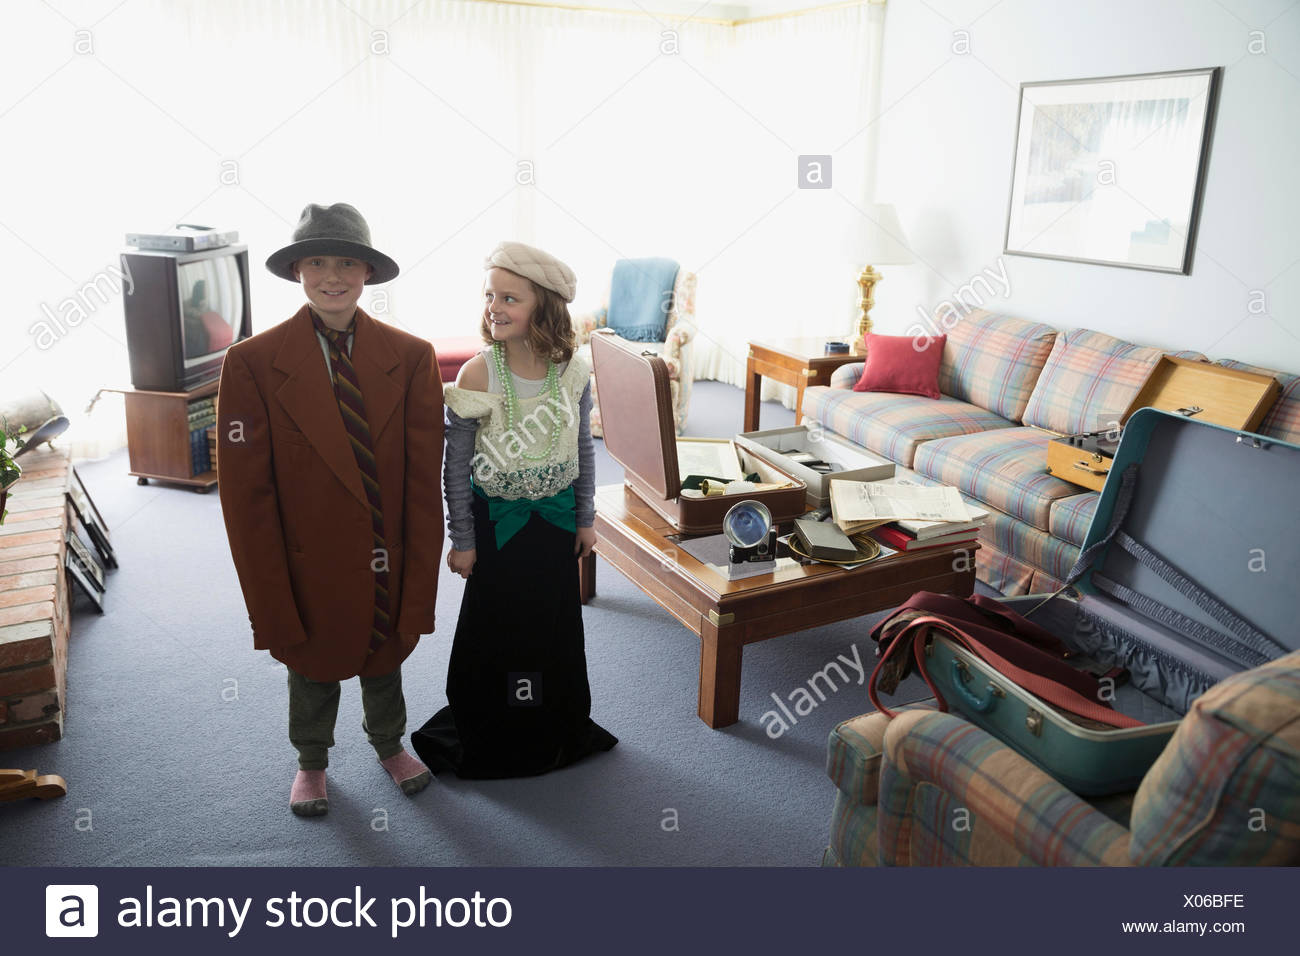 Portrait brother and sister in old-fashioned clothing - Stock Image